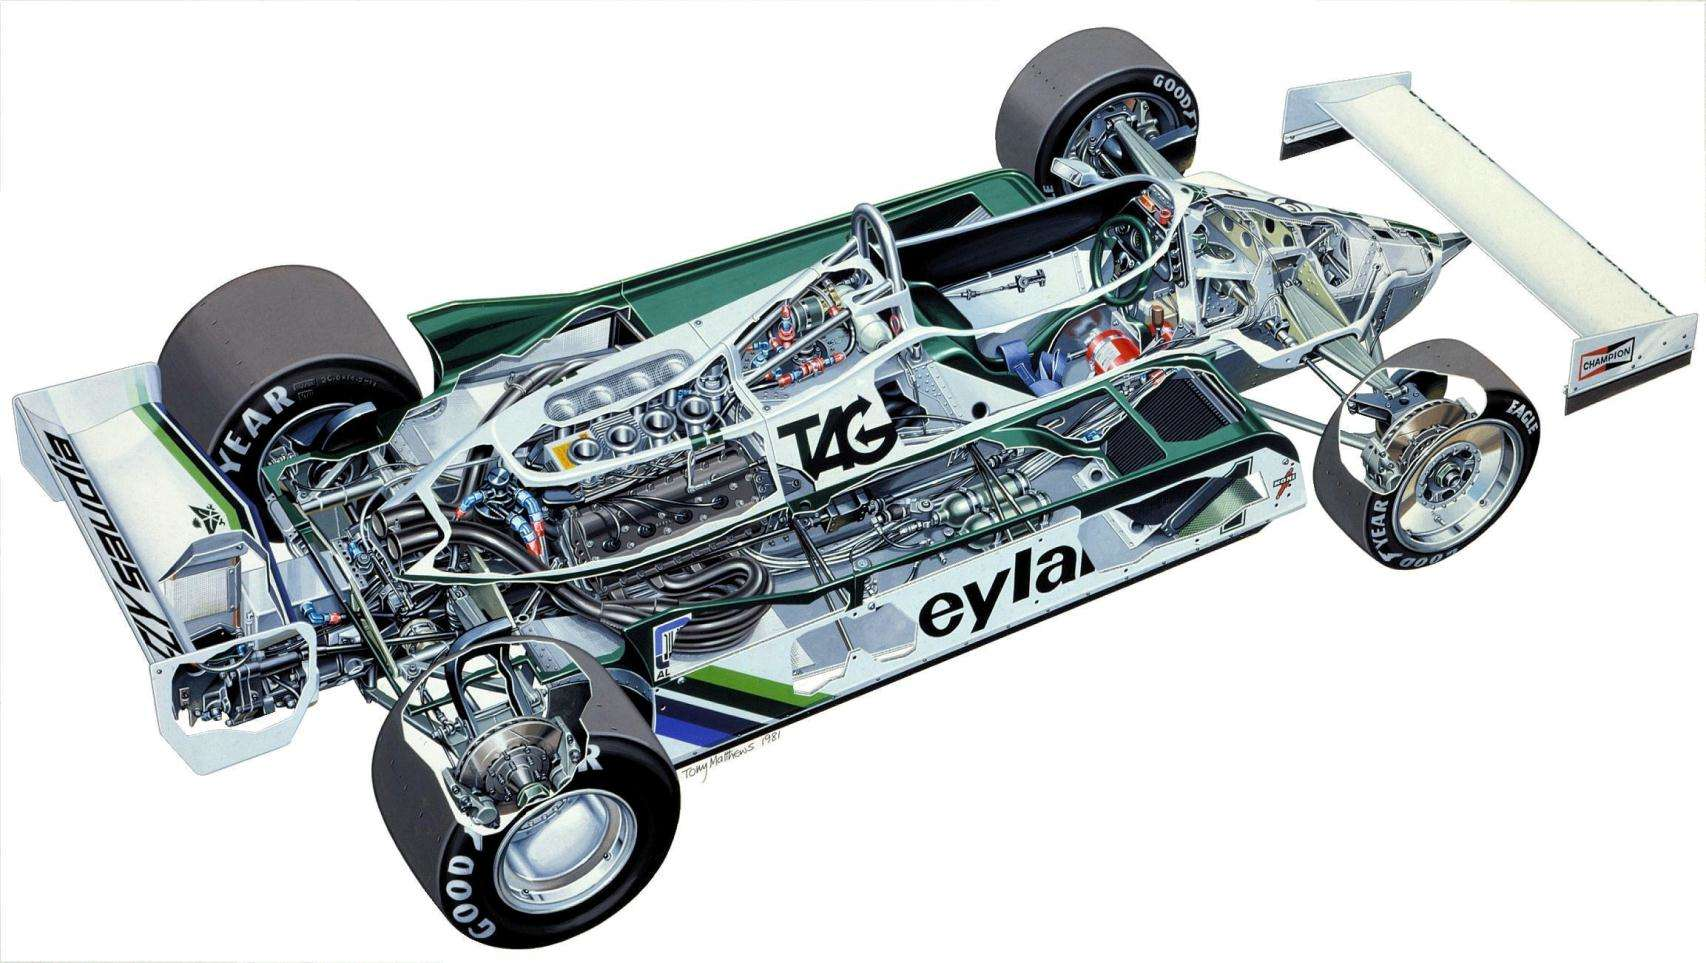 Chassis design of f1 car - 27 Alan Jones In 1980 My First F1 Hero What A Great Looking Car Again